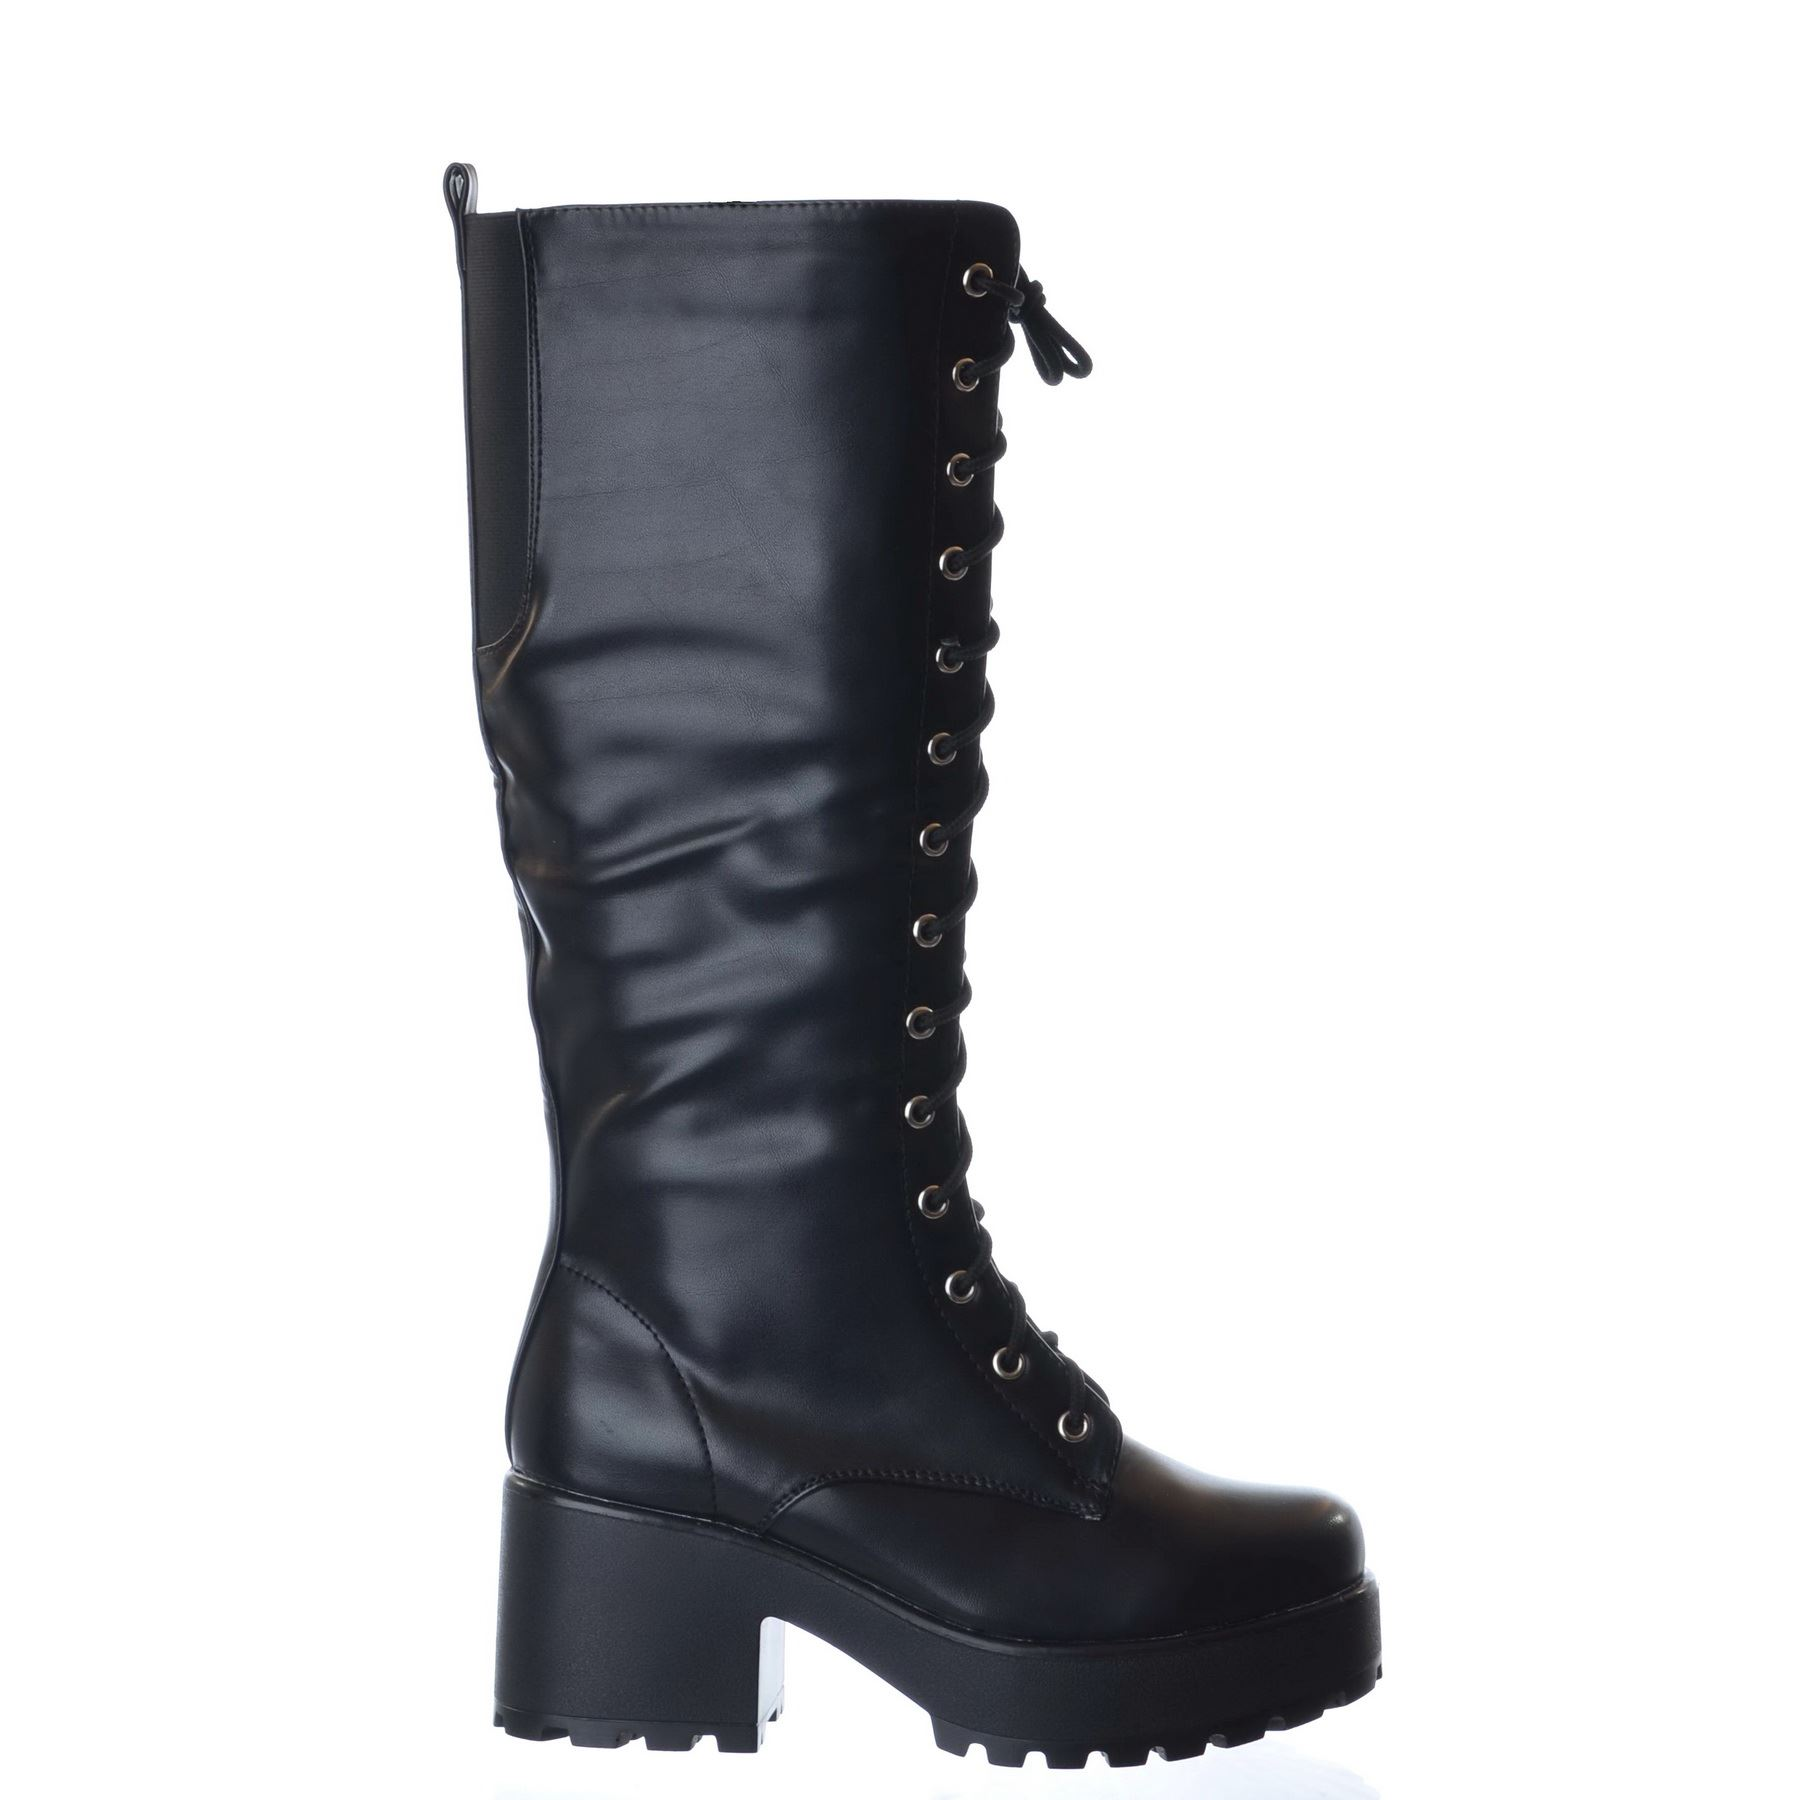 NEW-LADIES-WOMENS-KNEE-HIGH-CHUNKY-PLATFORM-MID-BLOCK-HEEL-LACE-UP-ZIP-UP-BOOTS thumbnail 3